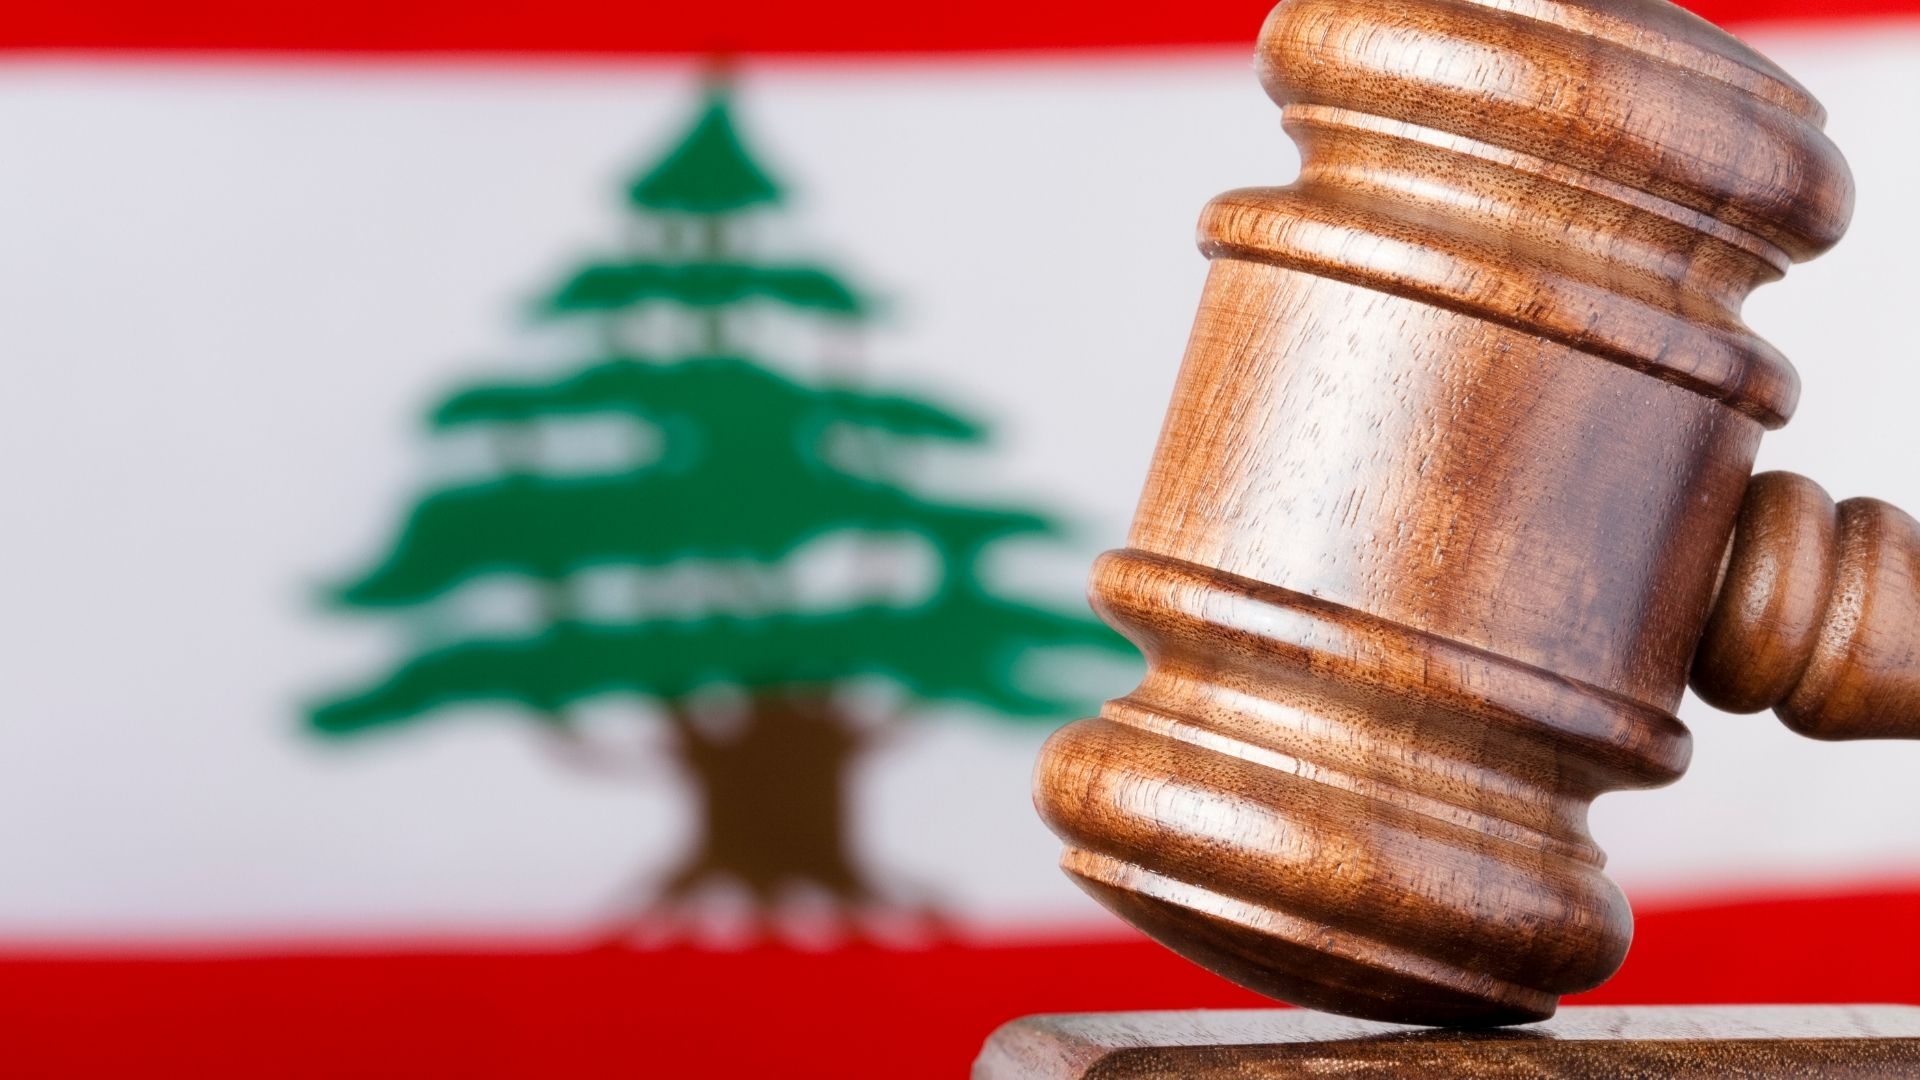 MSCI Reclassification of Lebanon from Frontier Markets to Standalone